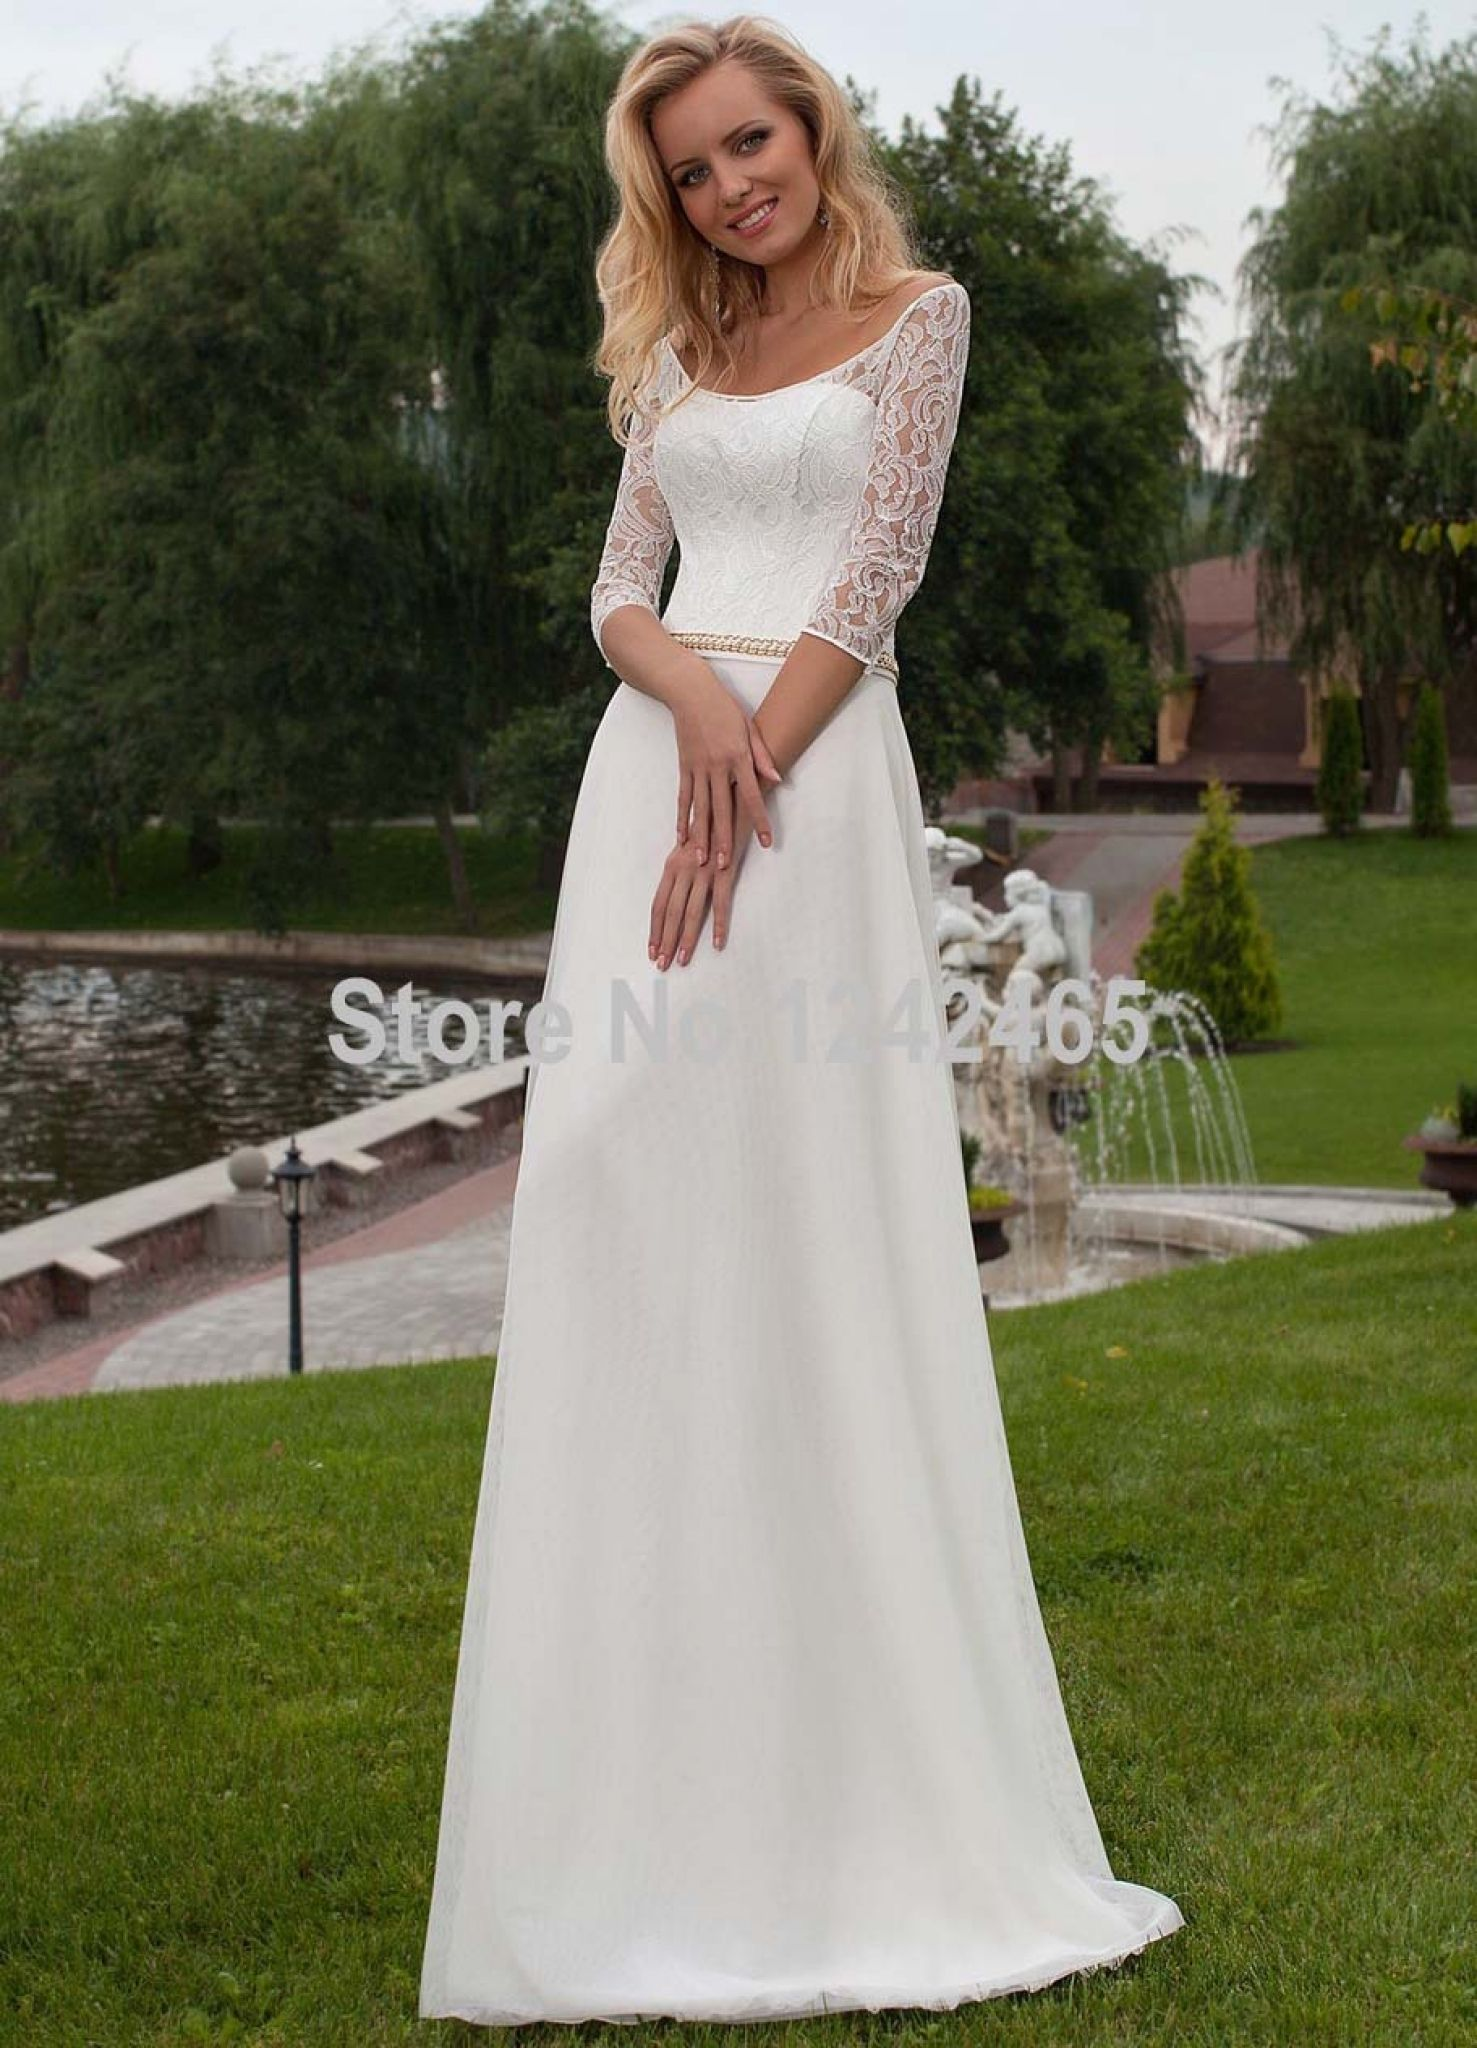 Country dresses for weddings  country western wedding dresses  dressy dresses for weddings Check